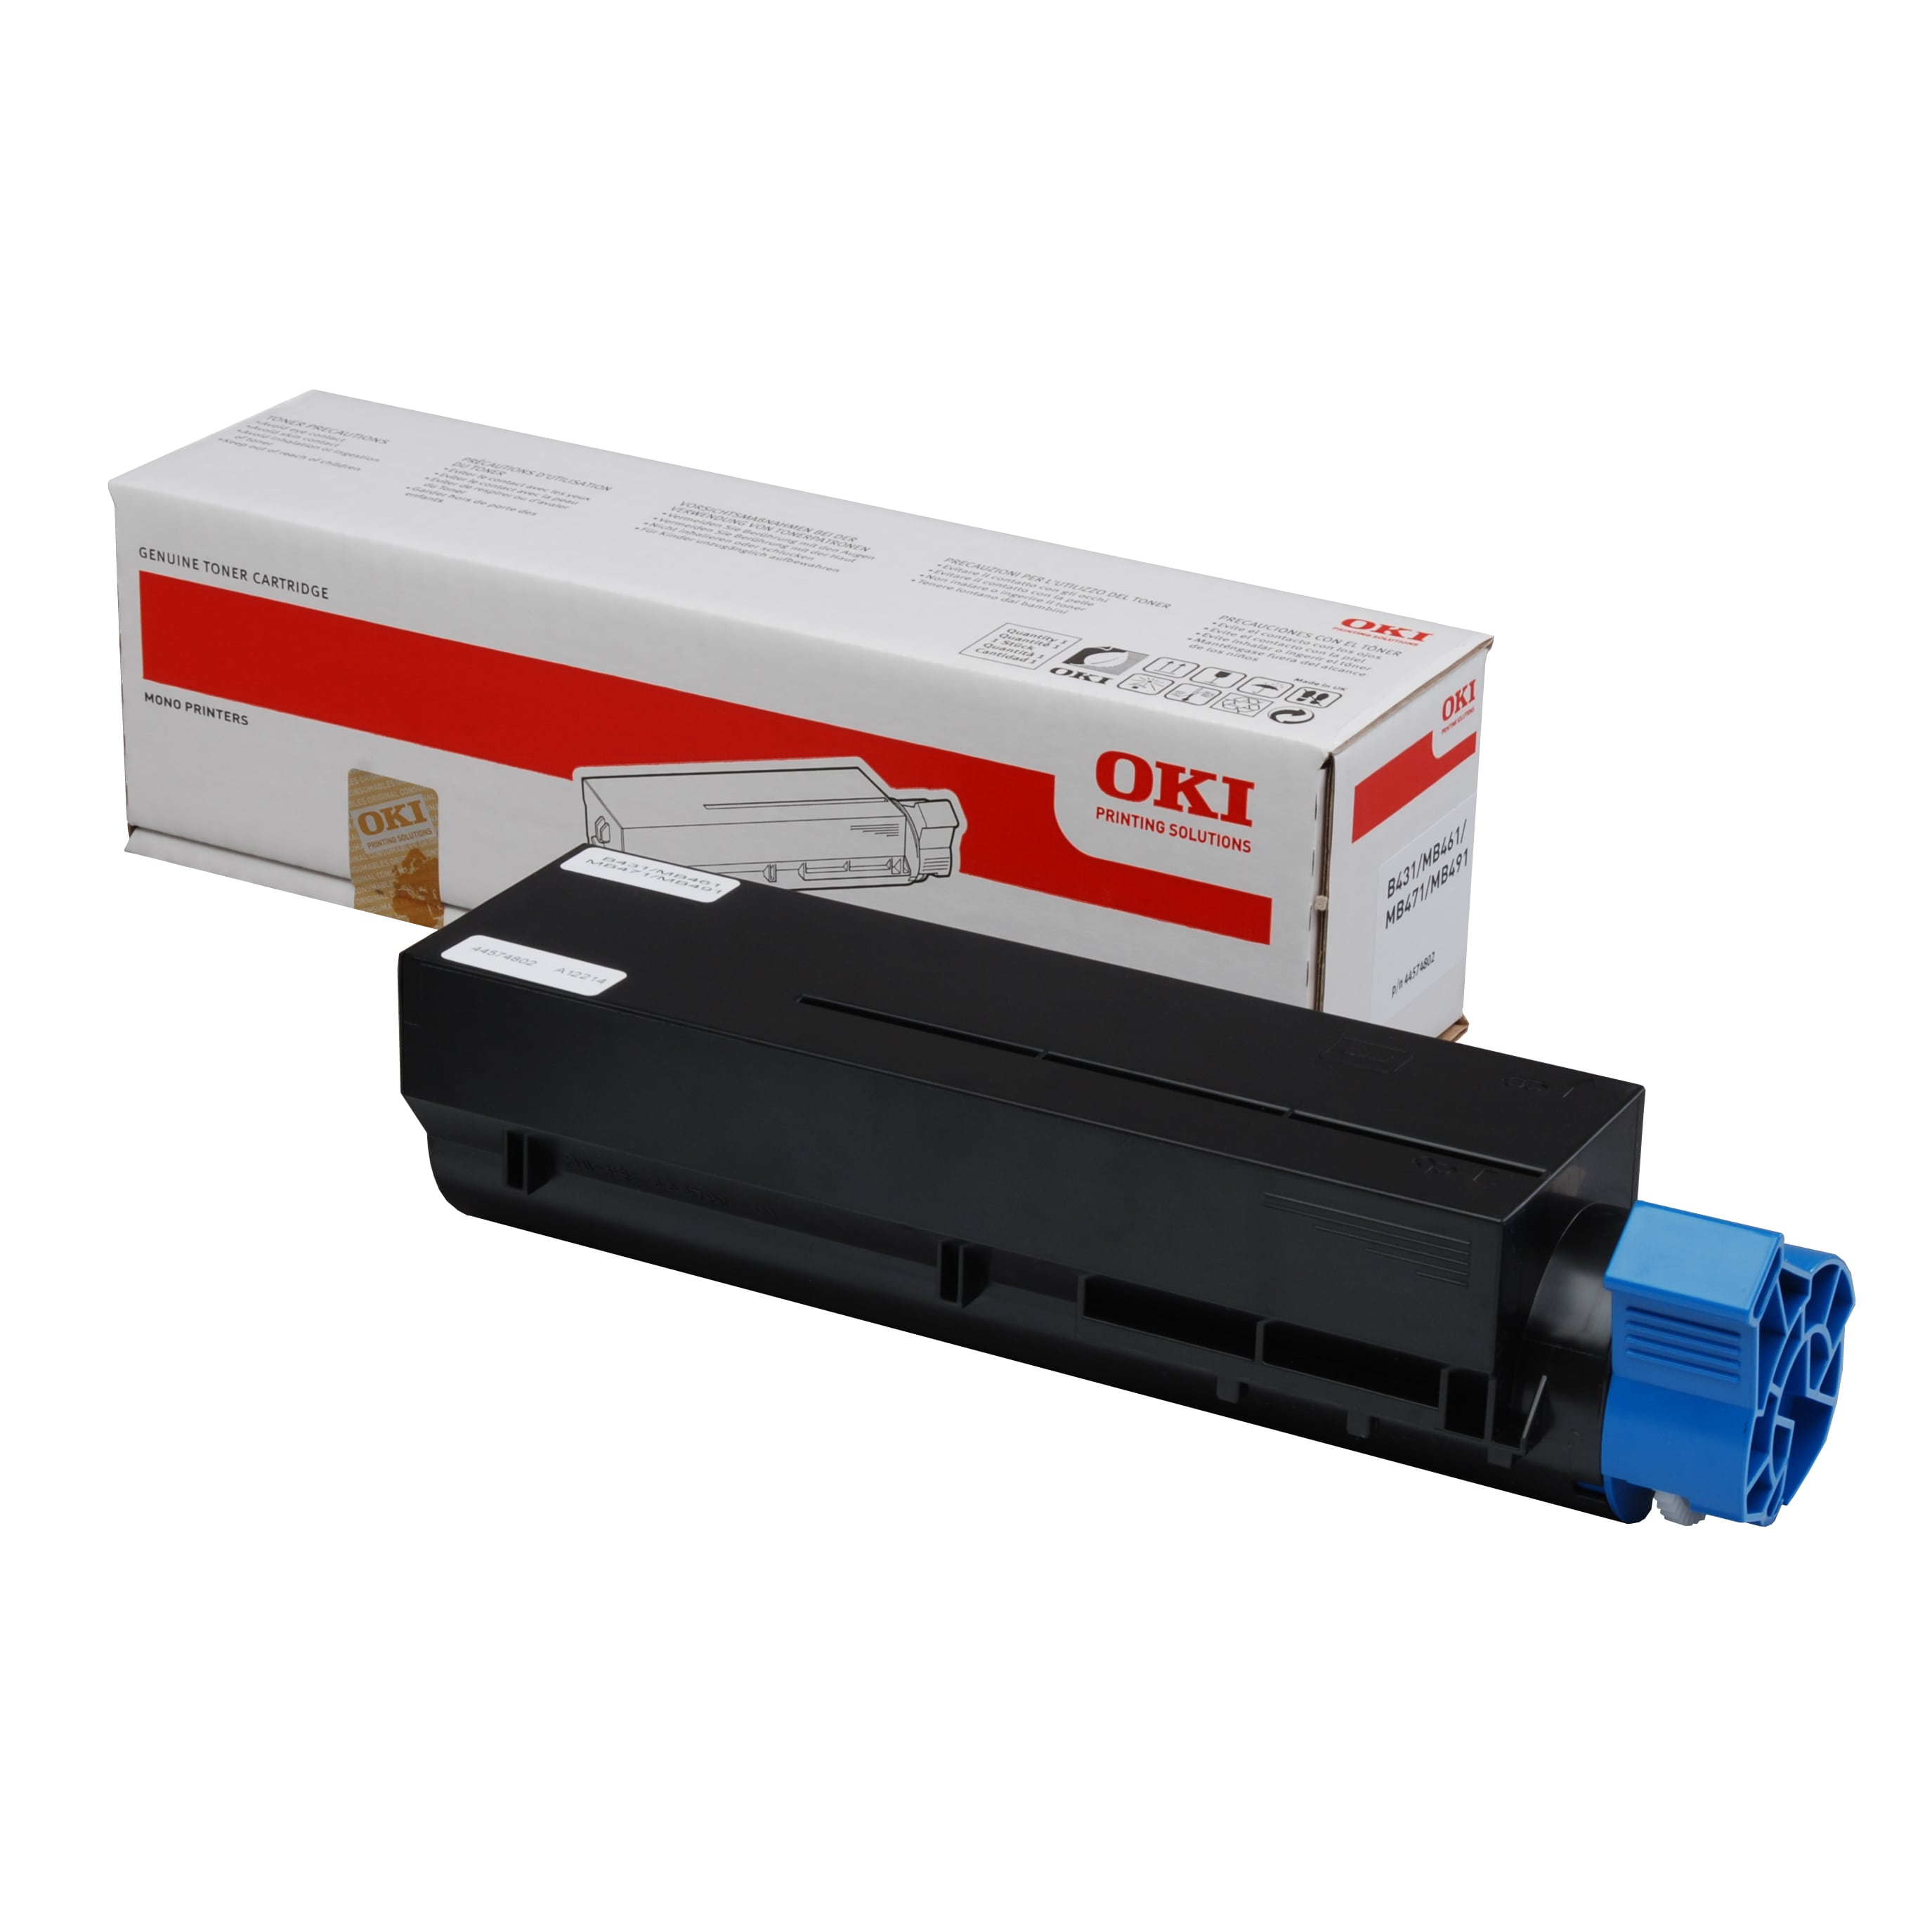 Oki 44574702 Toner Cartridge - Black